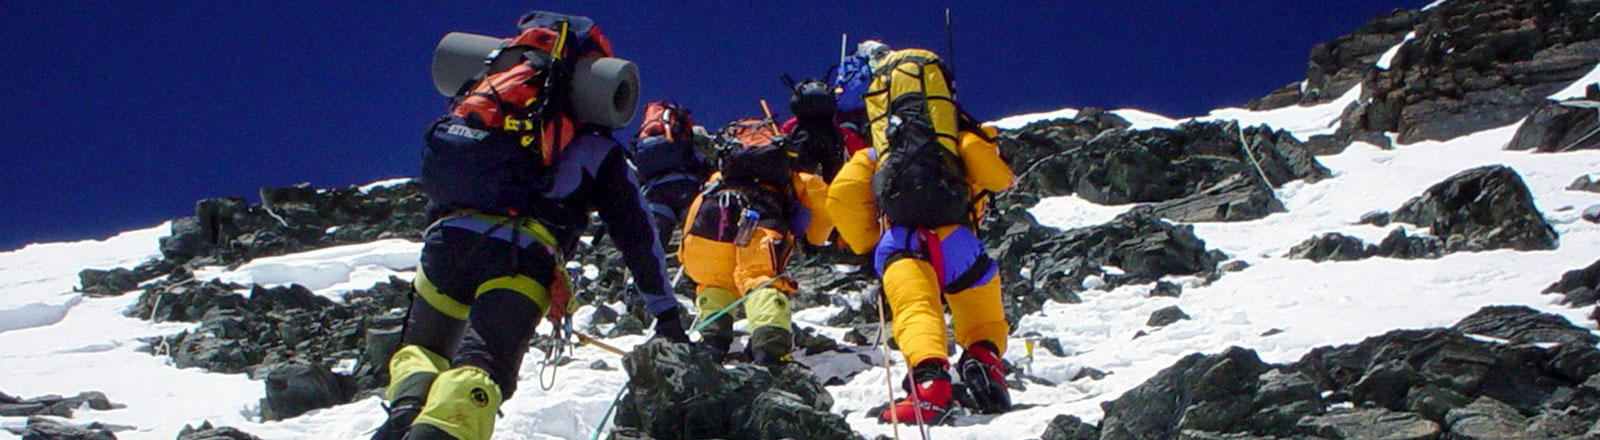 Bergsteiger am Mount Everest